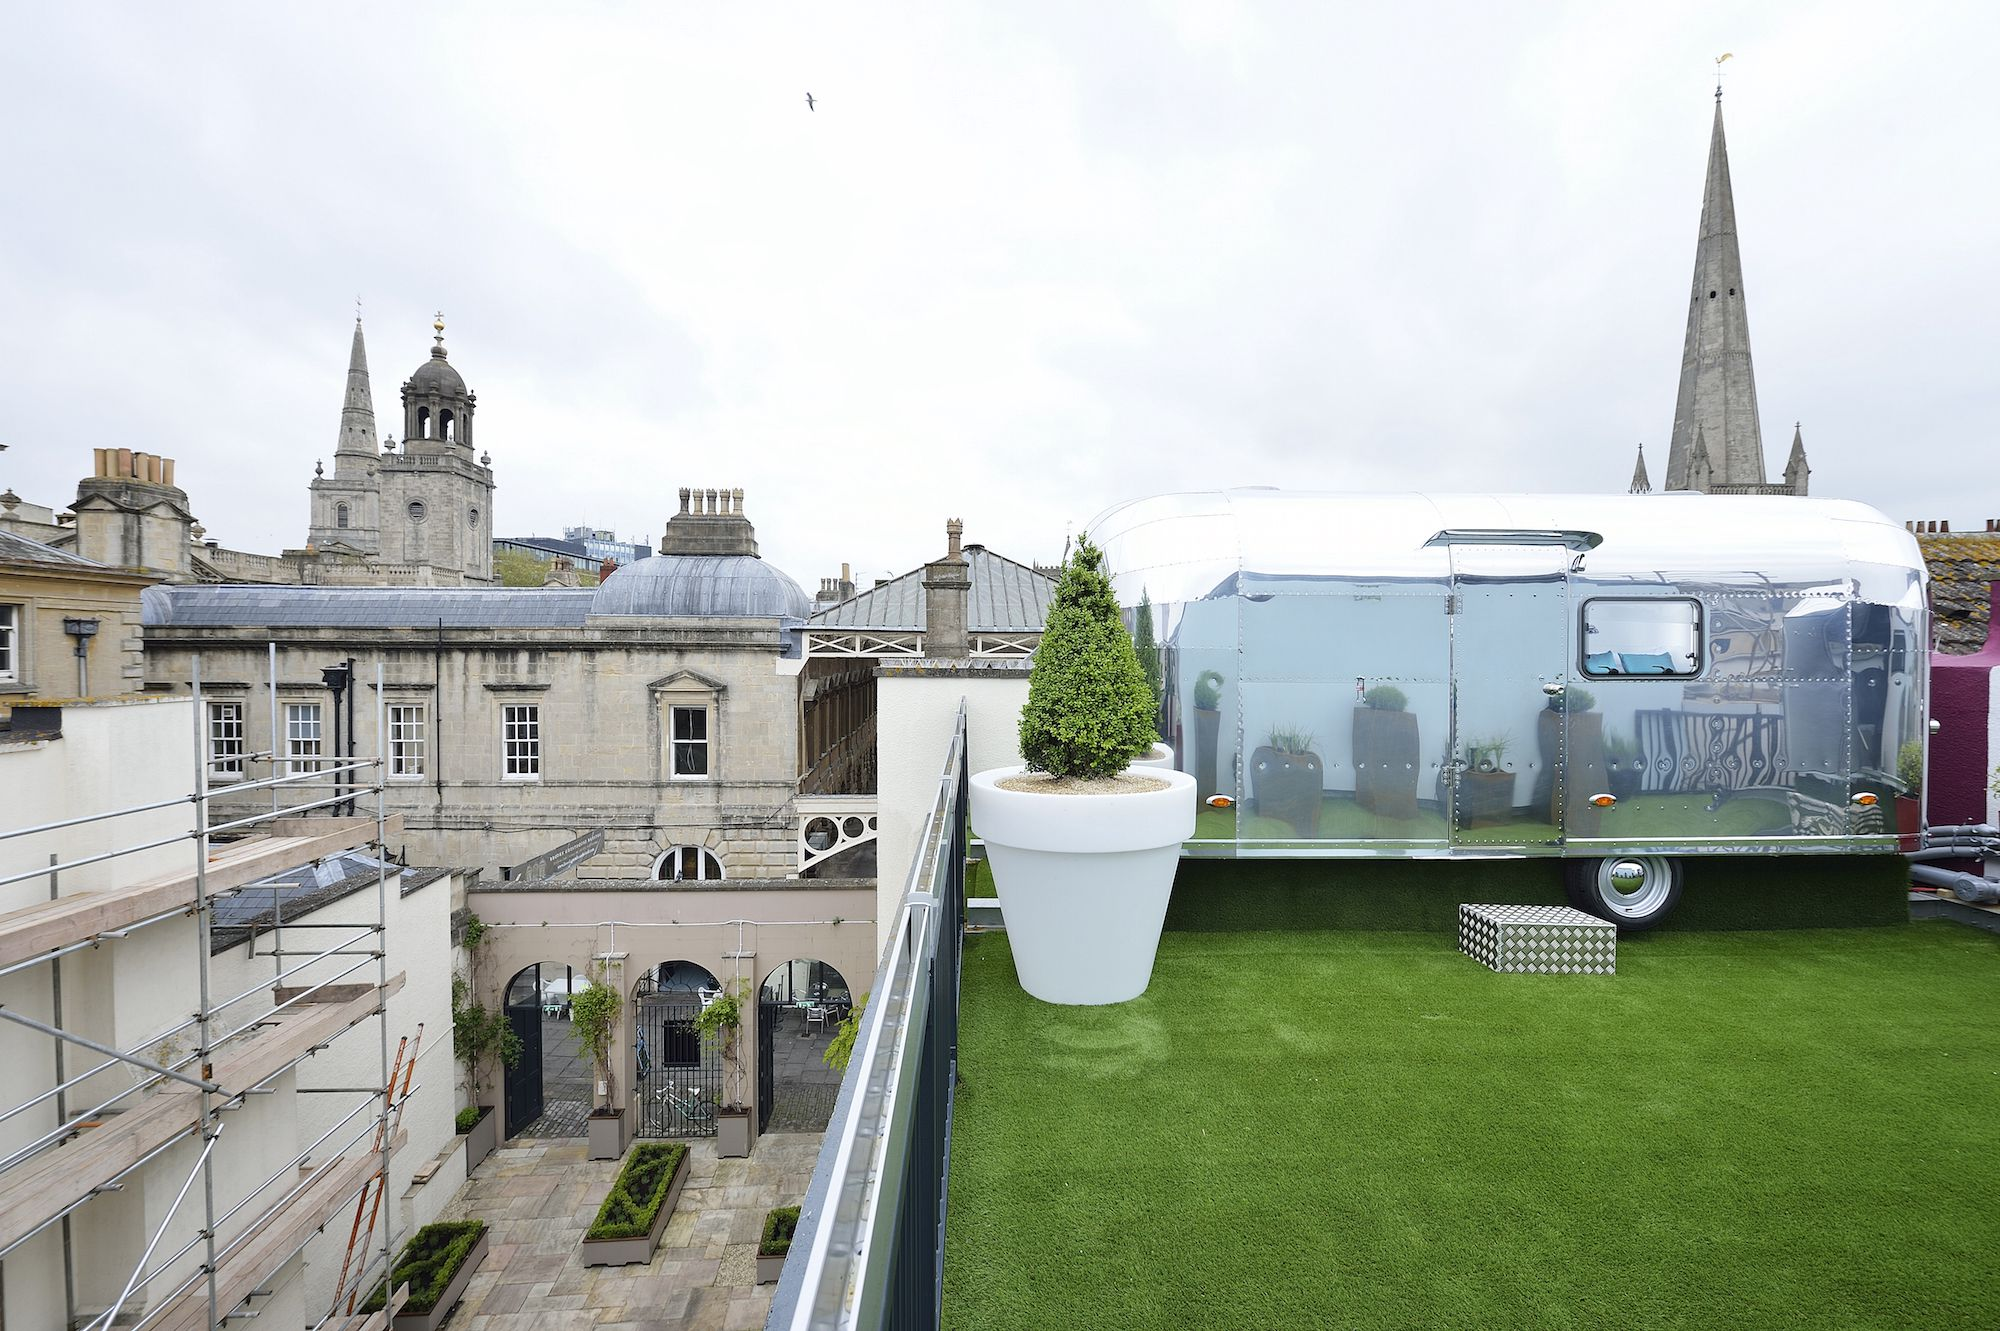 Glamping in Bristol: A quirky city escape on the roof of a boutique Bristol guesthouse where guests sleep in vintage-style, aluminium caravans and peep out at unbeatable city views.